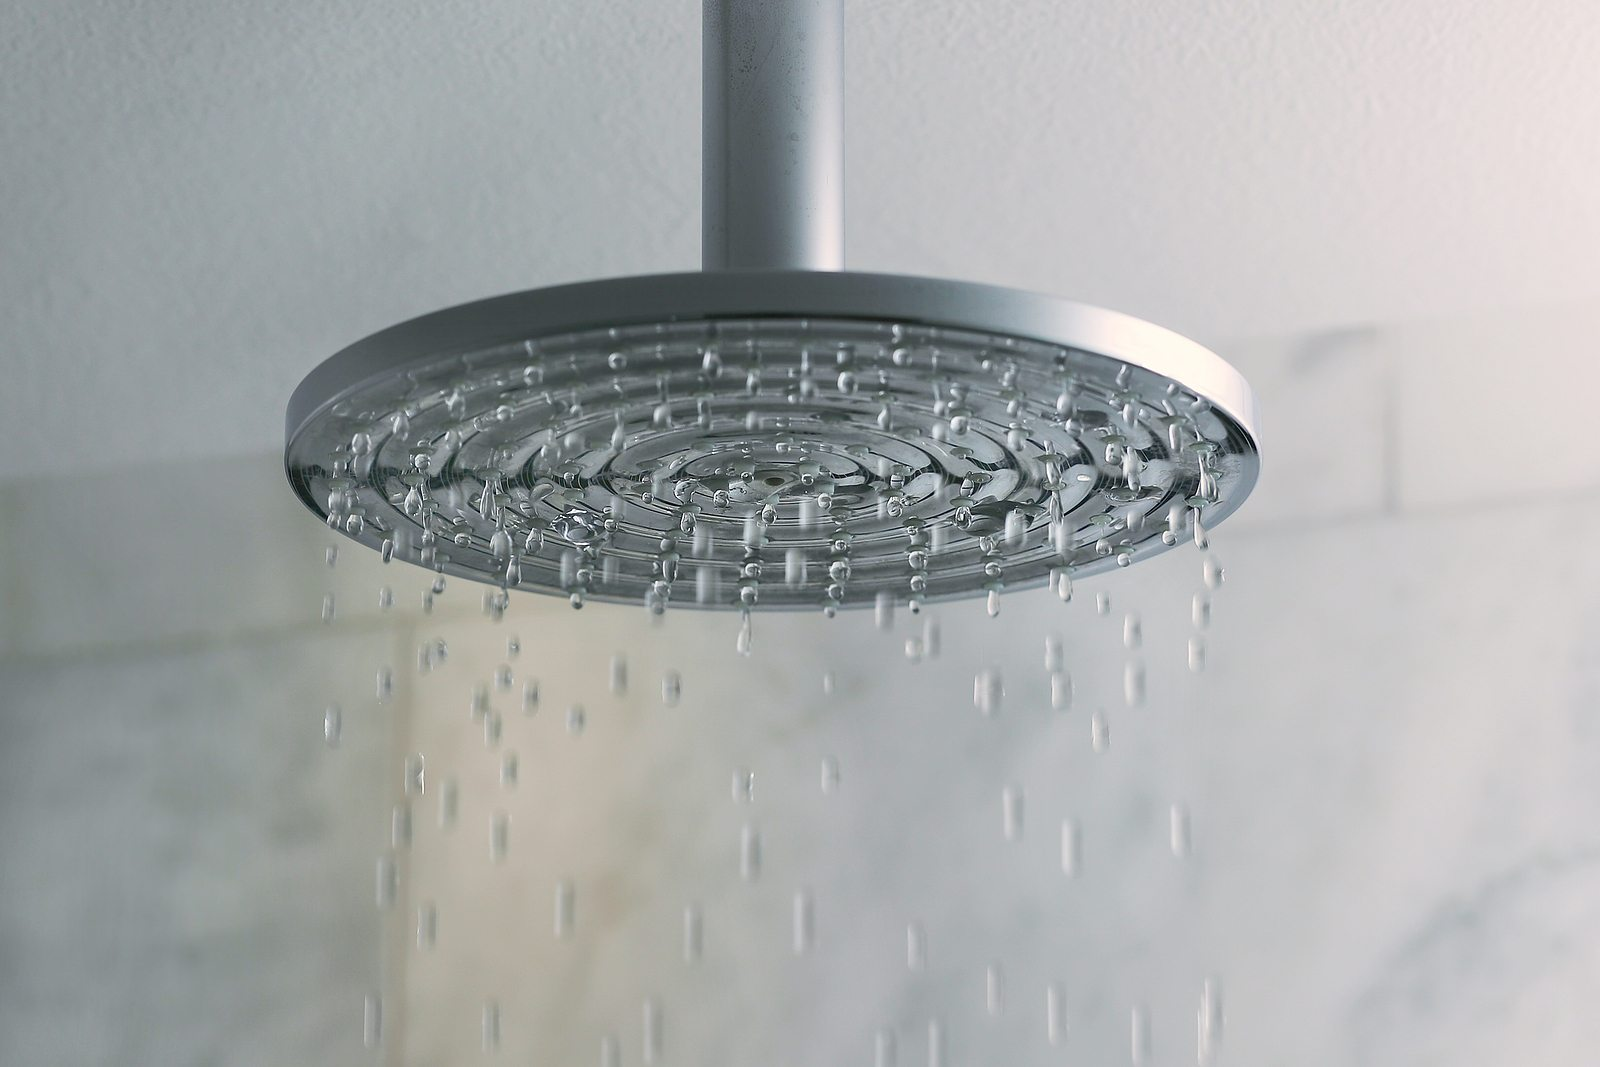 Shower turned on, ceiling shower head closeup